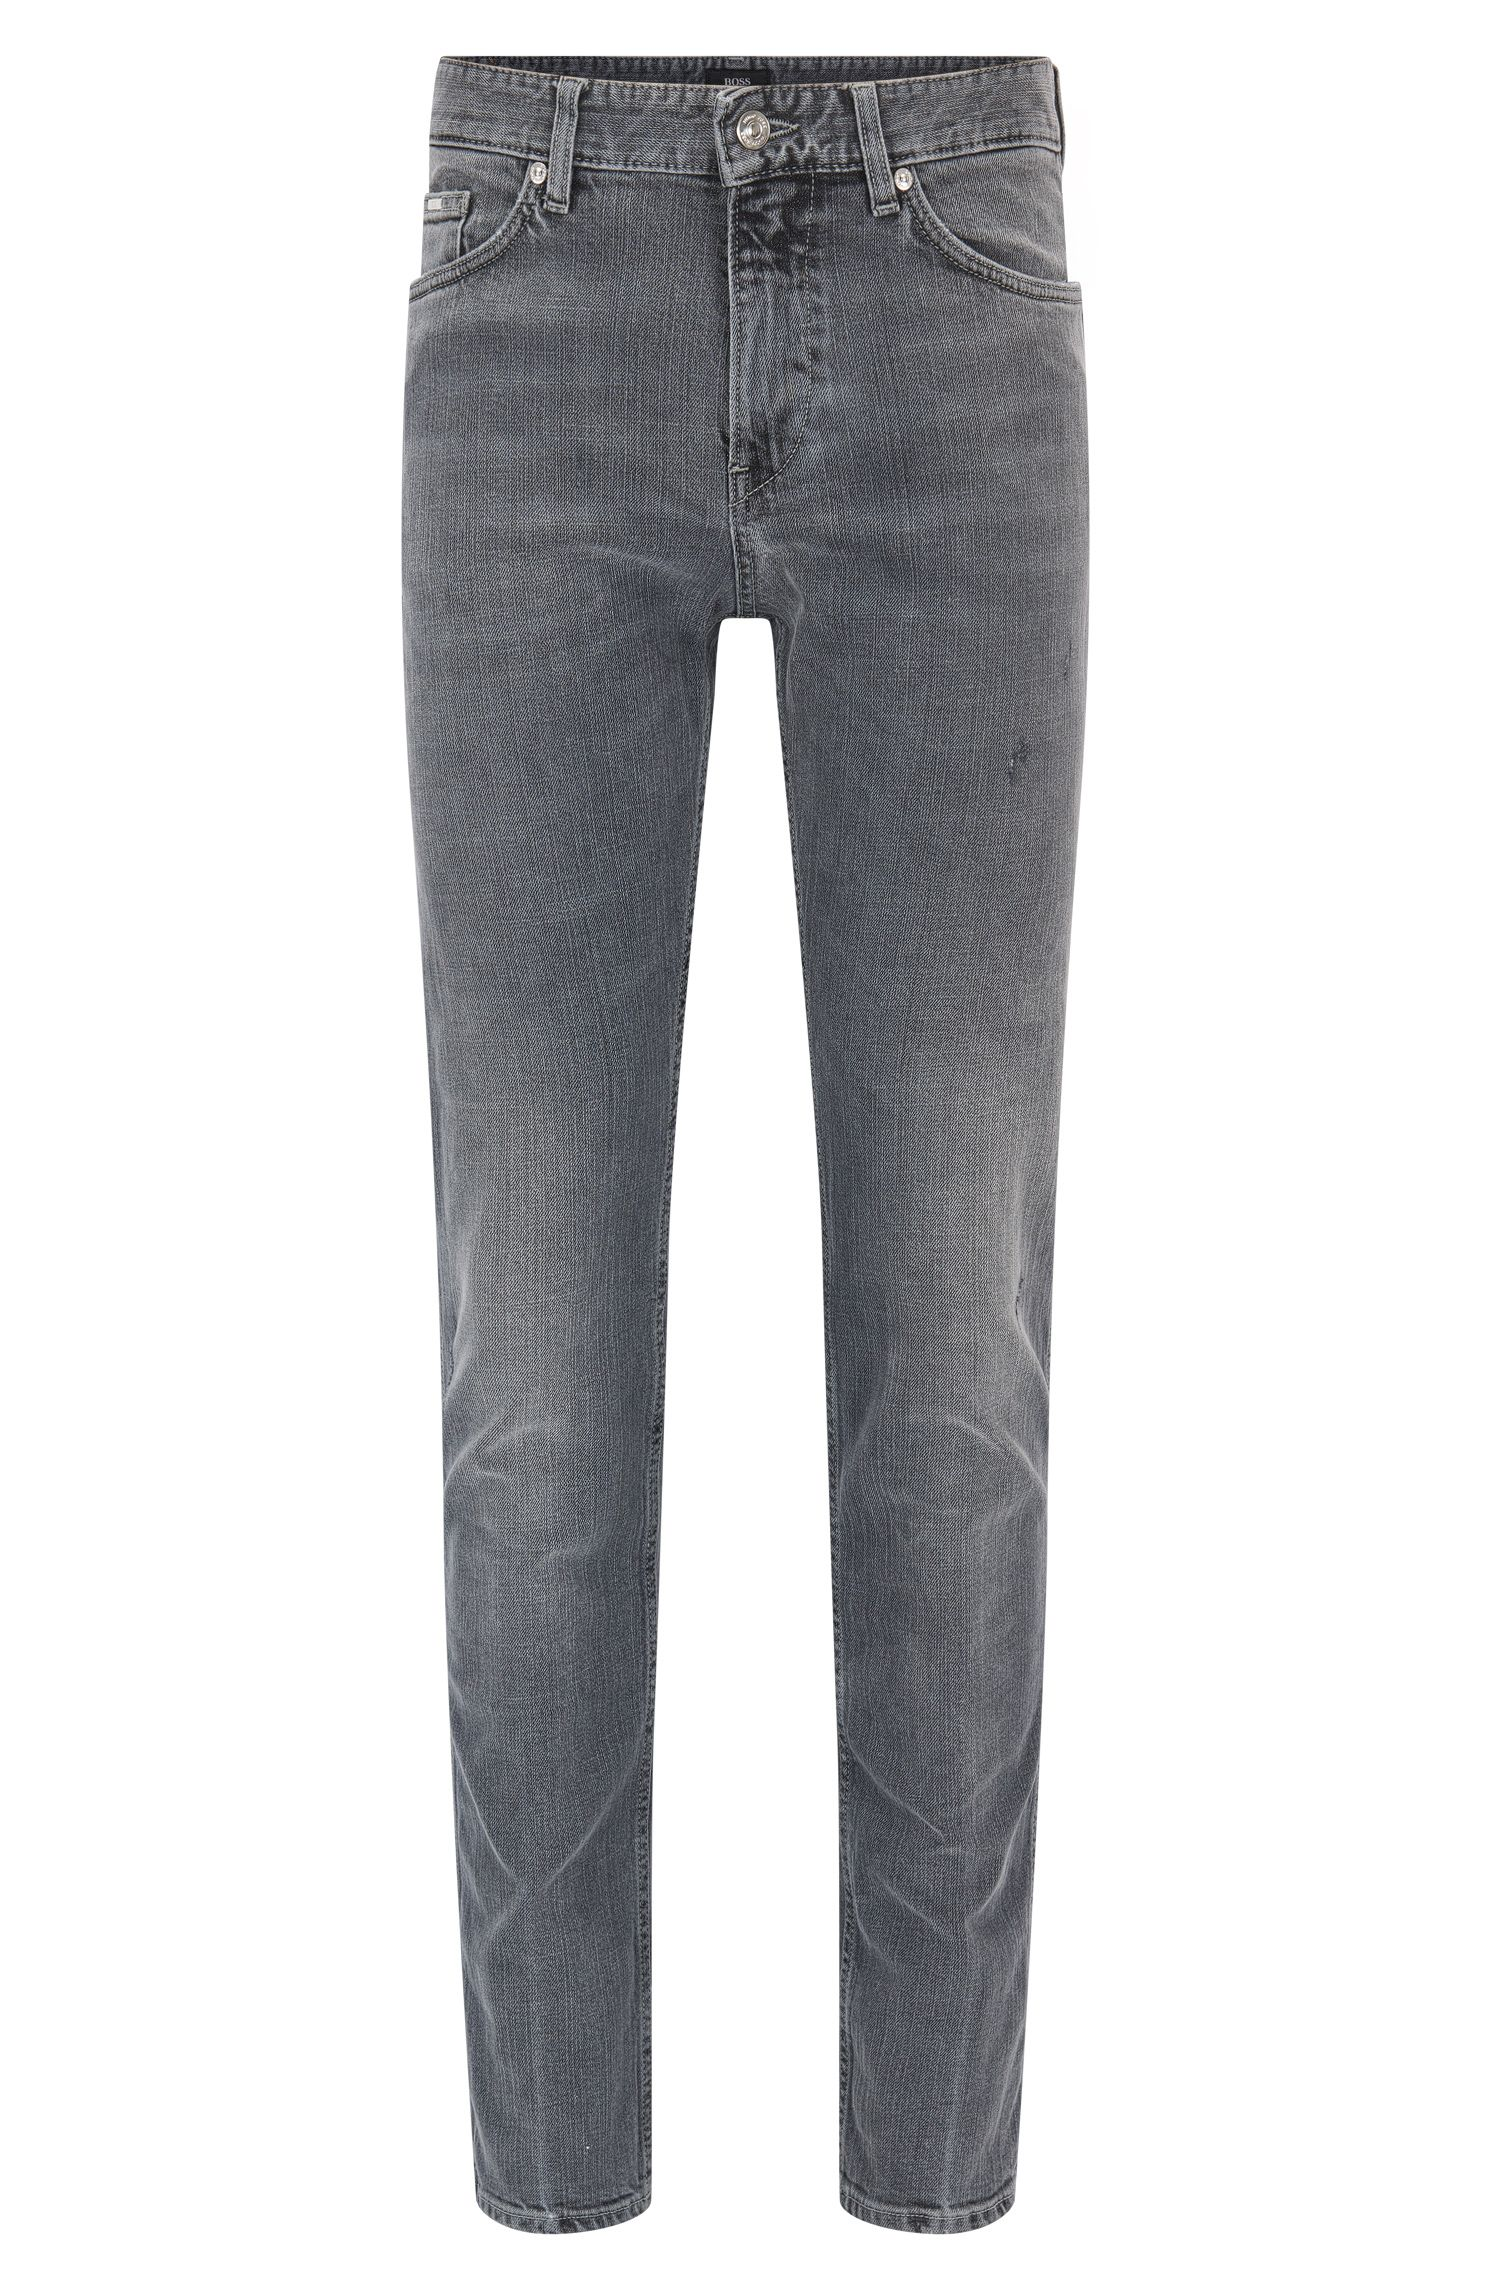 Slim-fit jeans in grey vintage-effect stretch denim